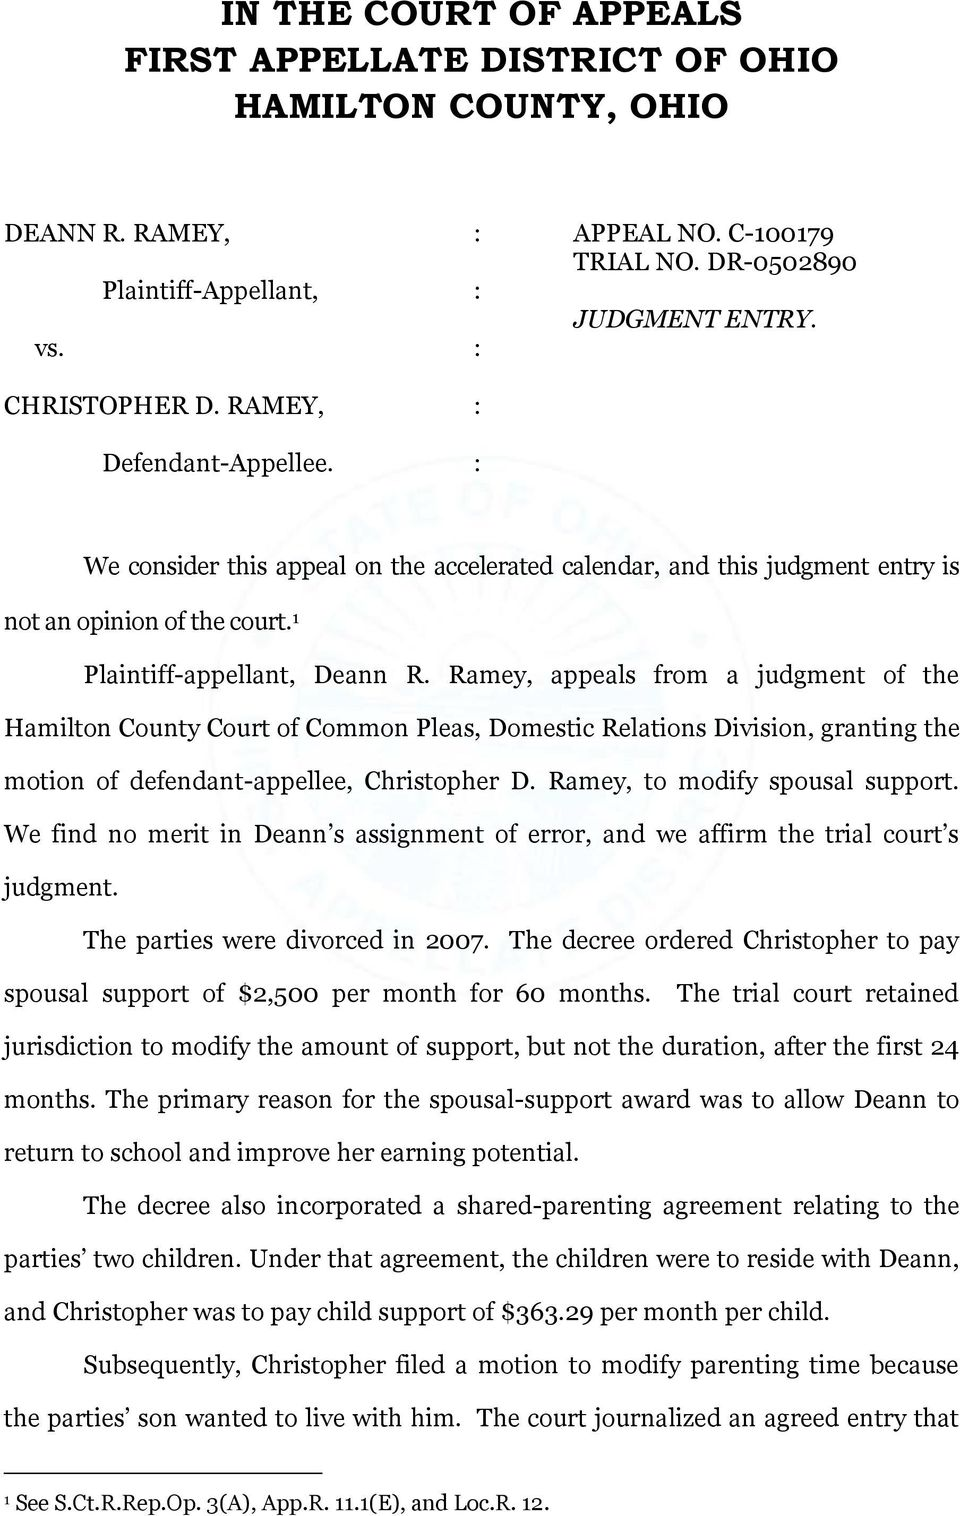 Ramey, appeals from a judgment of the Hamilton County Court of Common Pleas, Domestic Relations Division, granting the motion of defendant-appellee, Christopher D. Ramey, to modify spousal support.